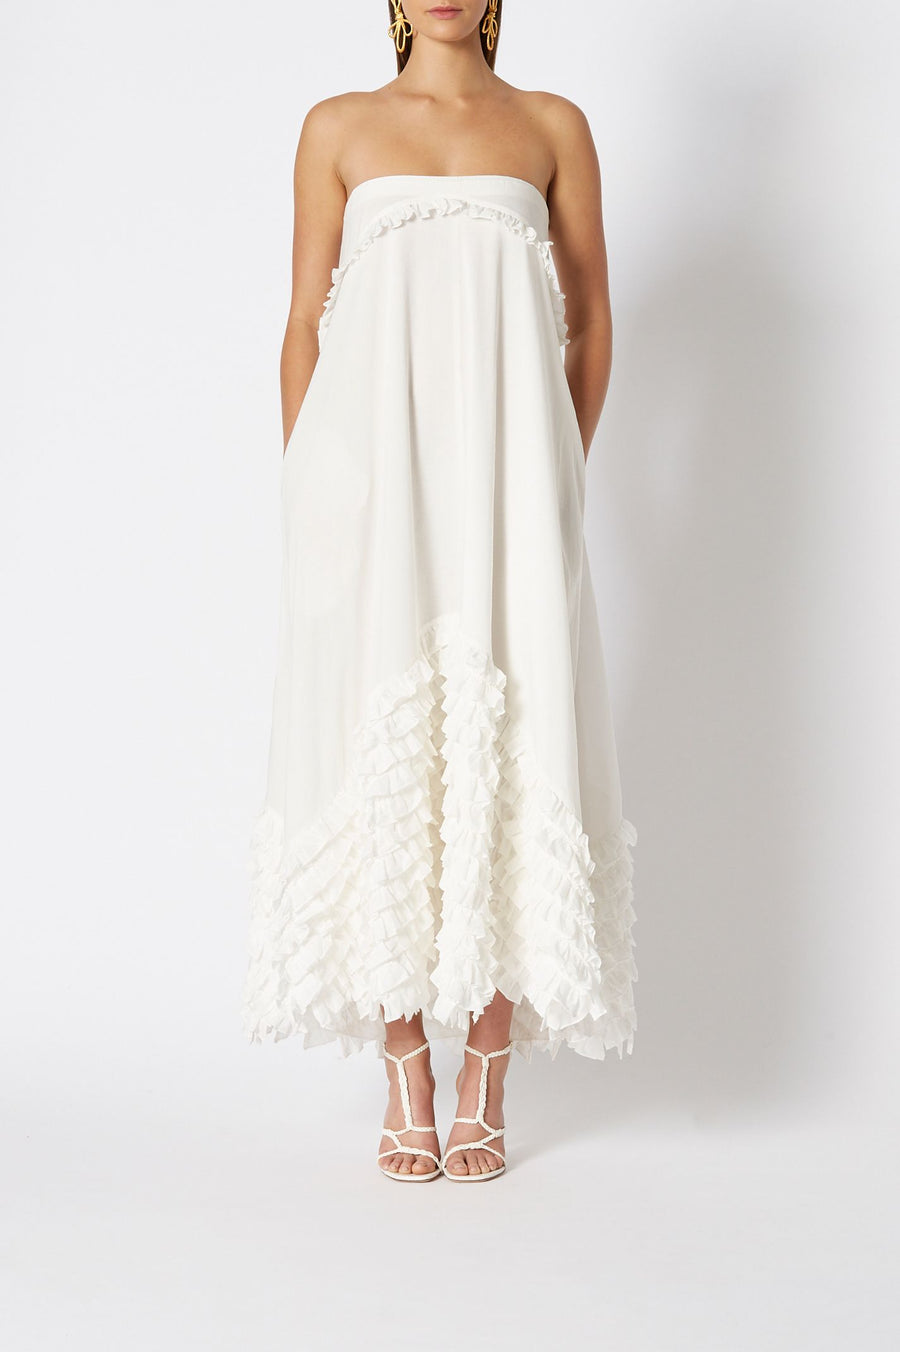 COTTON RUFFLE off shoulder dress, bell sleeves, tie around waist, ruffle at bottom of dress, falls above ankle, color white